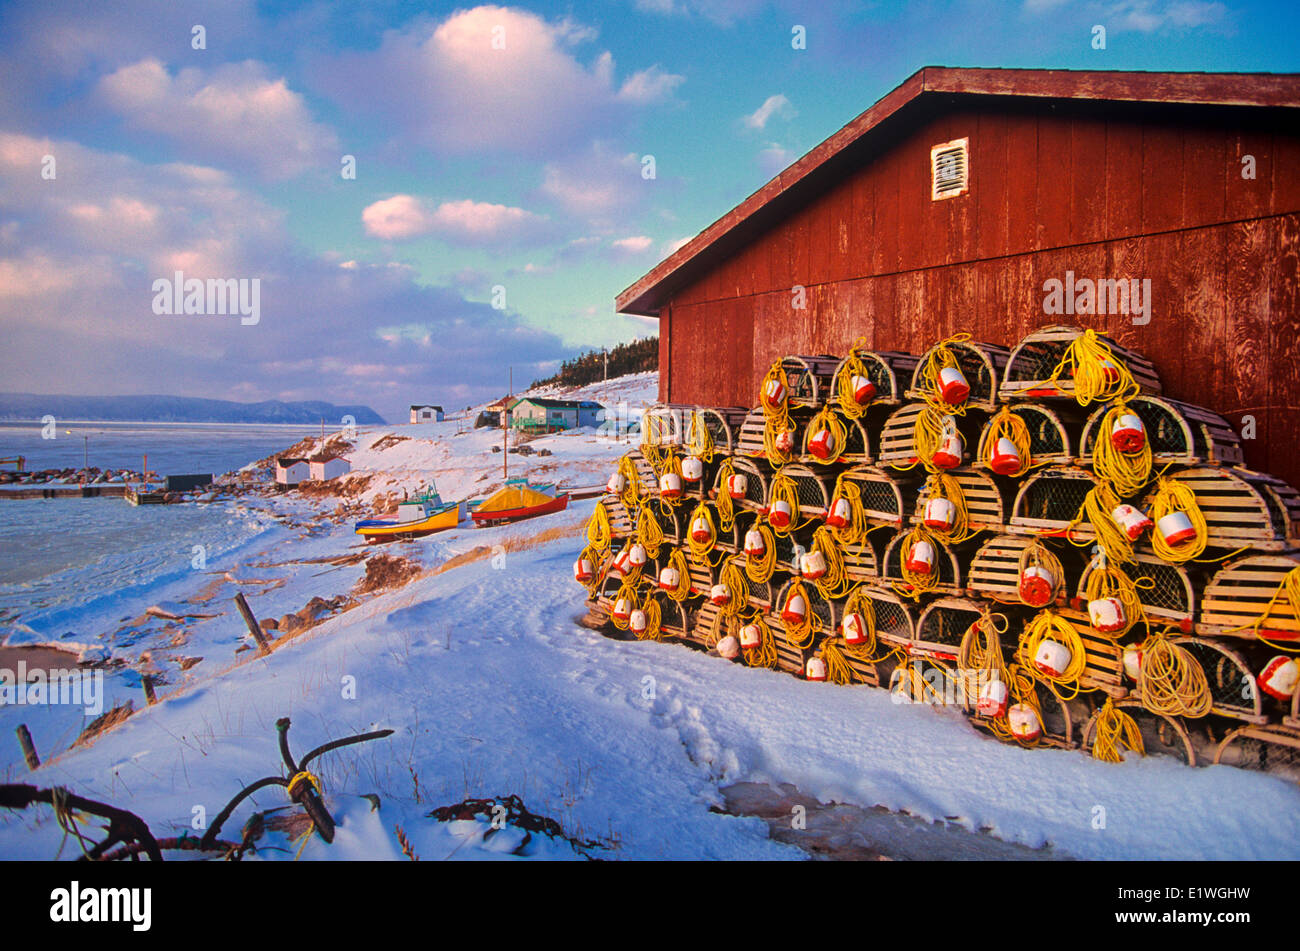 Lobster Traps in the winter time in maritime fishing village, Prince Edward Island, Canada - Stock Image